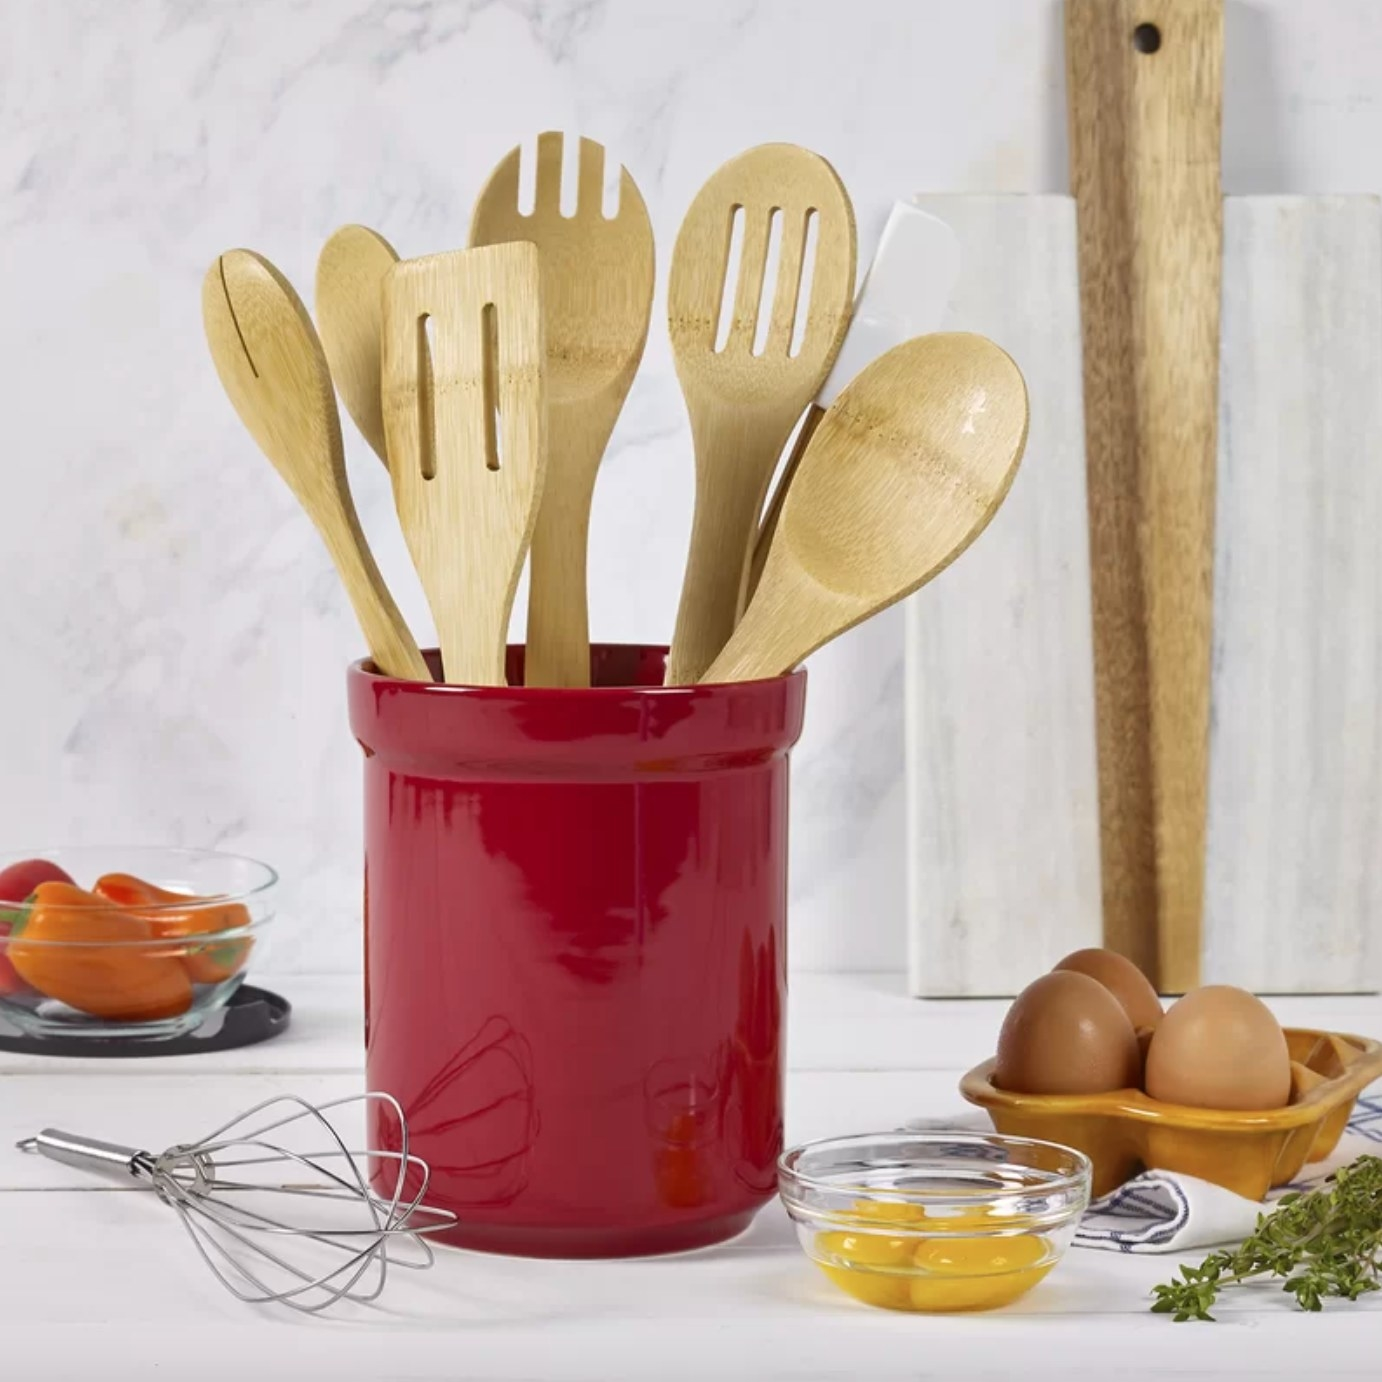 The kitchen tool set in red holding wood utensils